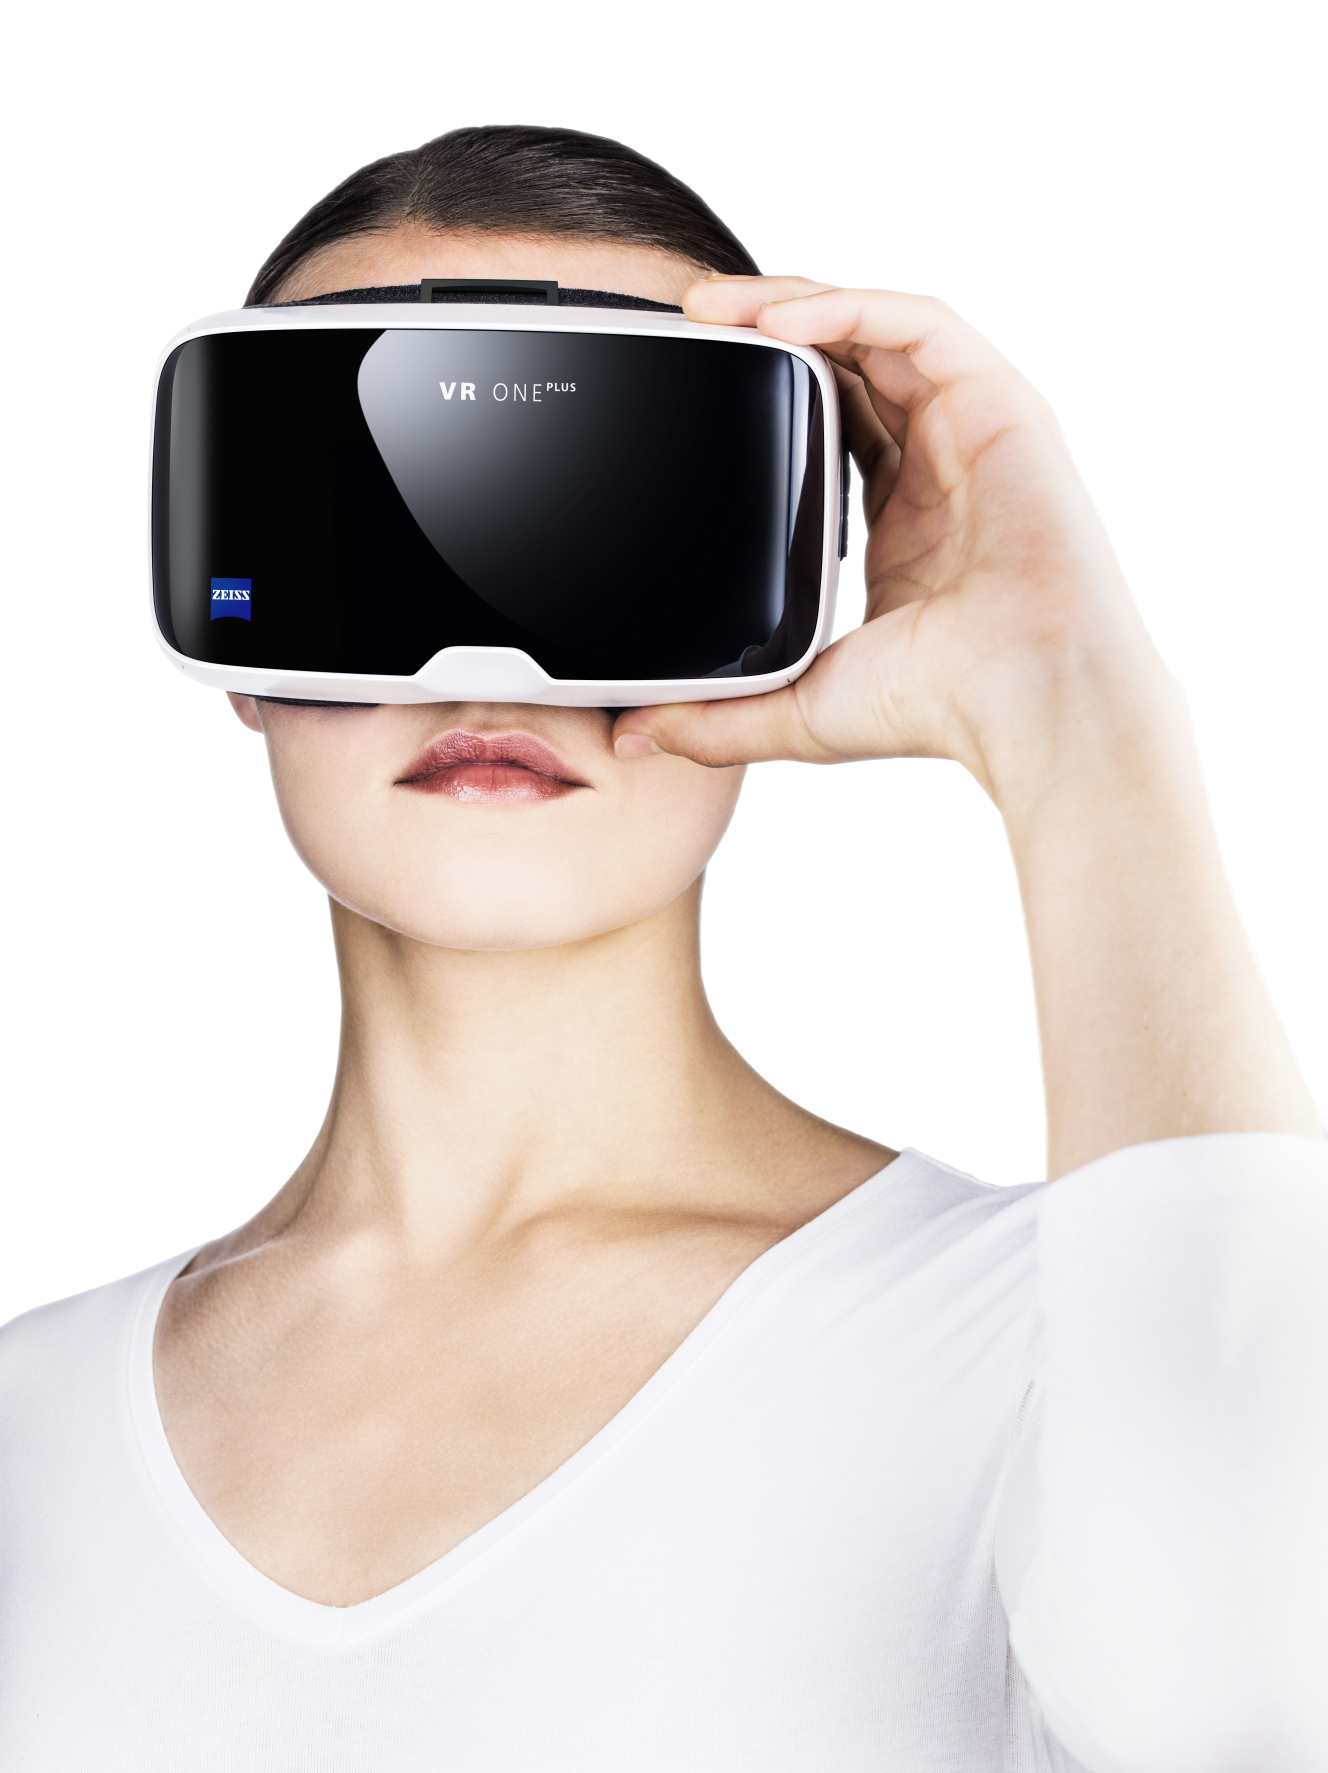 Die ZEISS VR ONE Plus